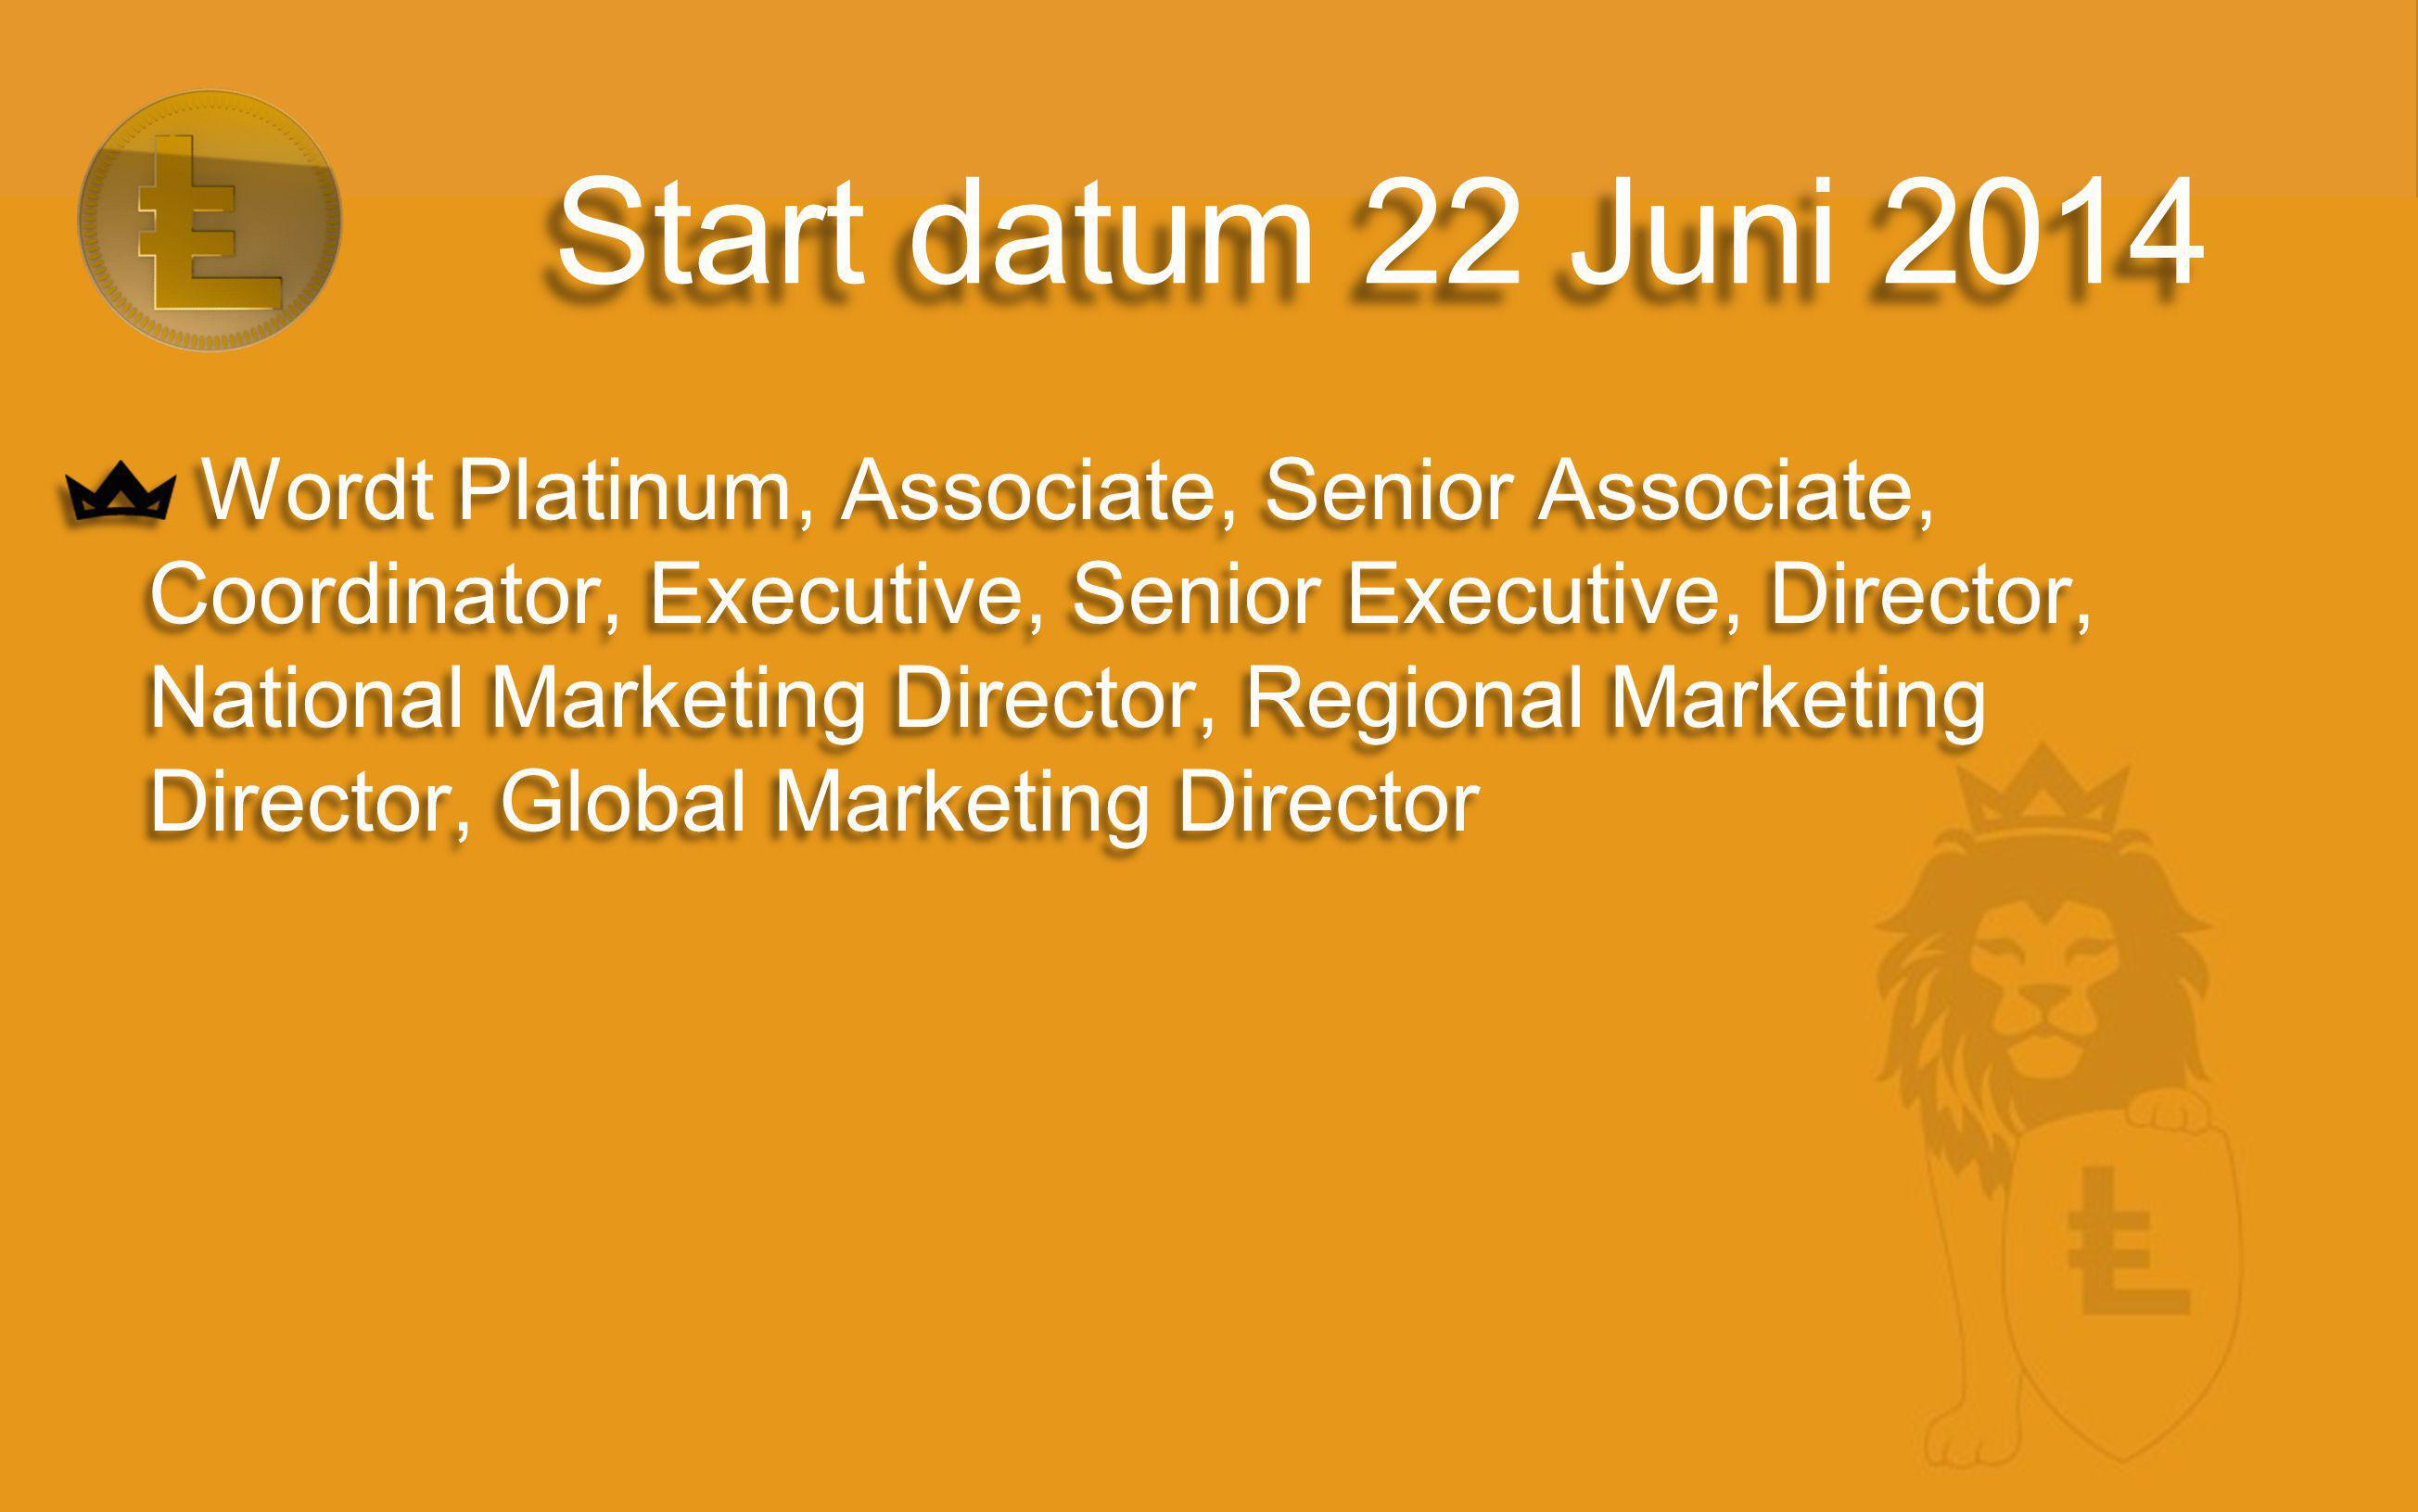 Wordt Platinum, Associate, Senior Associate, Coordinator, Executive, Senior Executive, Director, National Marketing Director, Regional Marketing Director, Global Marketing Director Wordt Platinum, Associate, Senior Associate, Coordinator, Executive, Senior Executive, Director, National Marketing Director, Regional Marketing Director, Global Marketing Director Start datum 22 Juni 2014